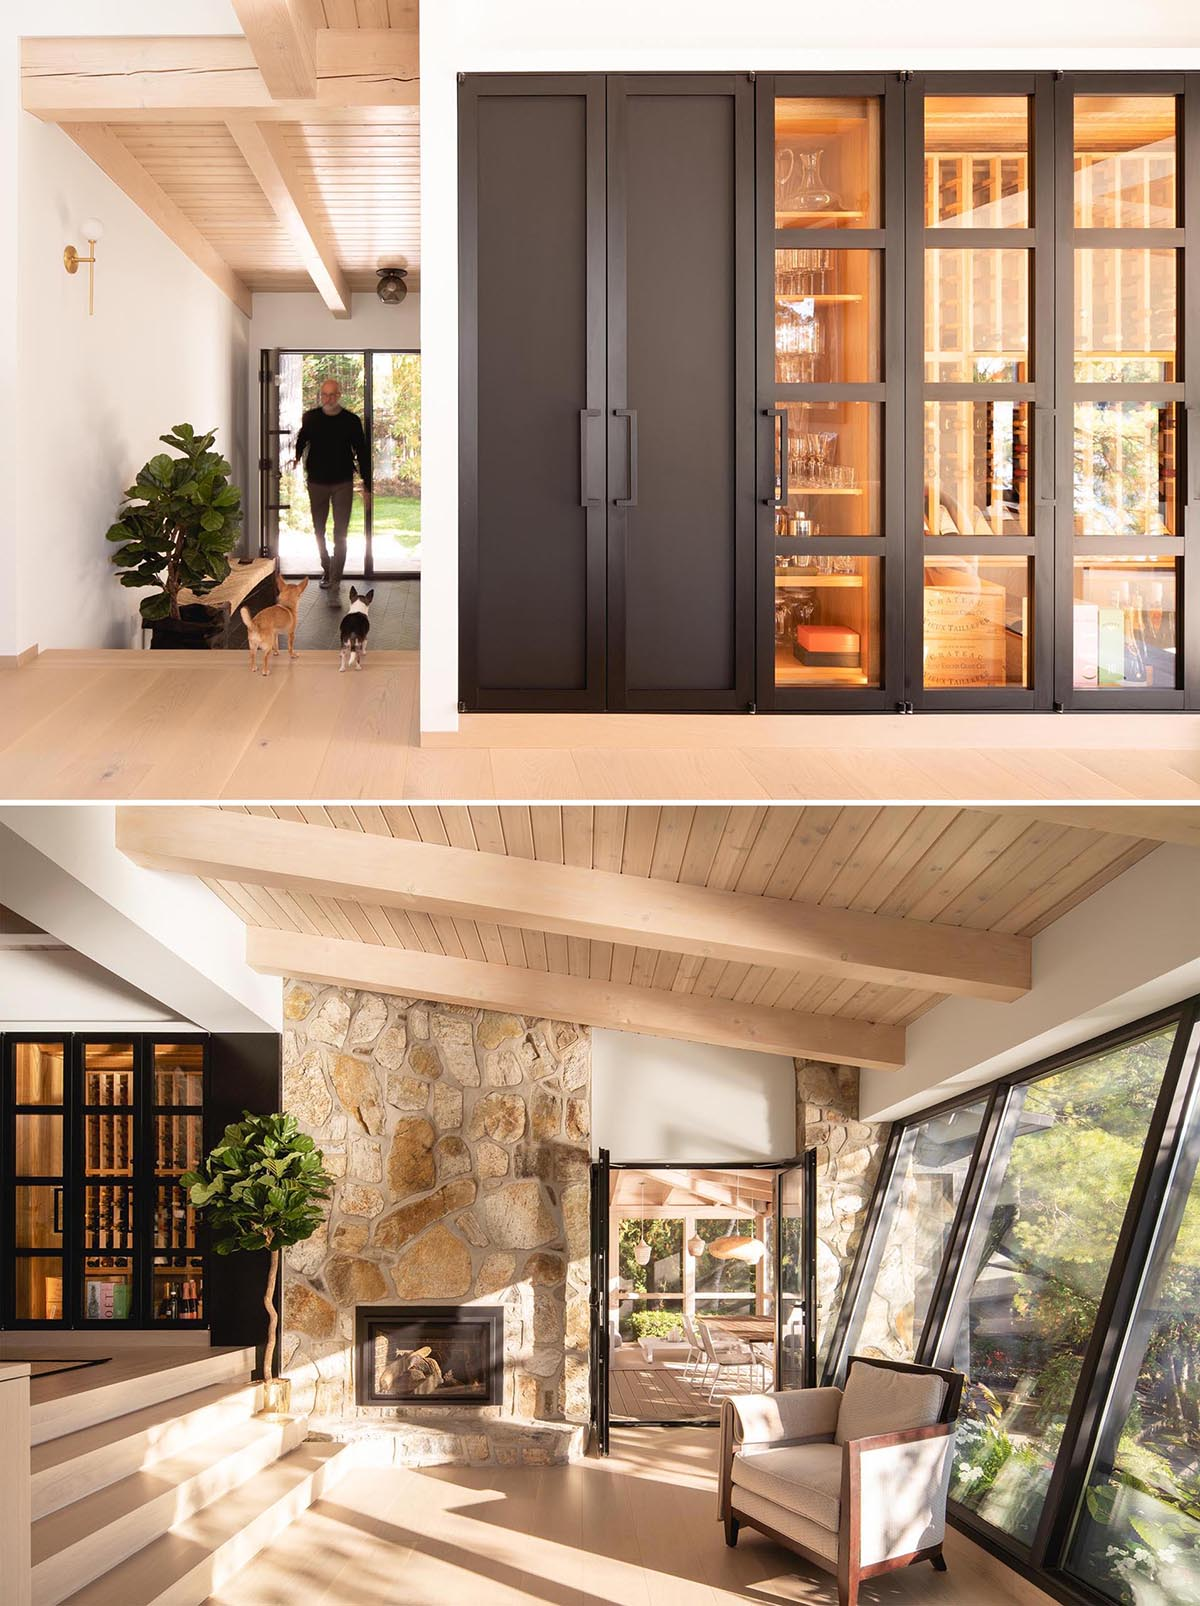 Highlighted by a black door and glass walls, is a dedicated wine storage area.